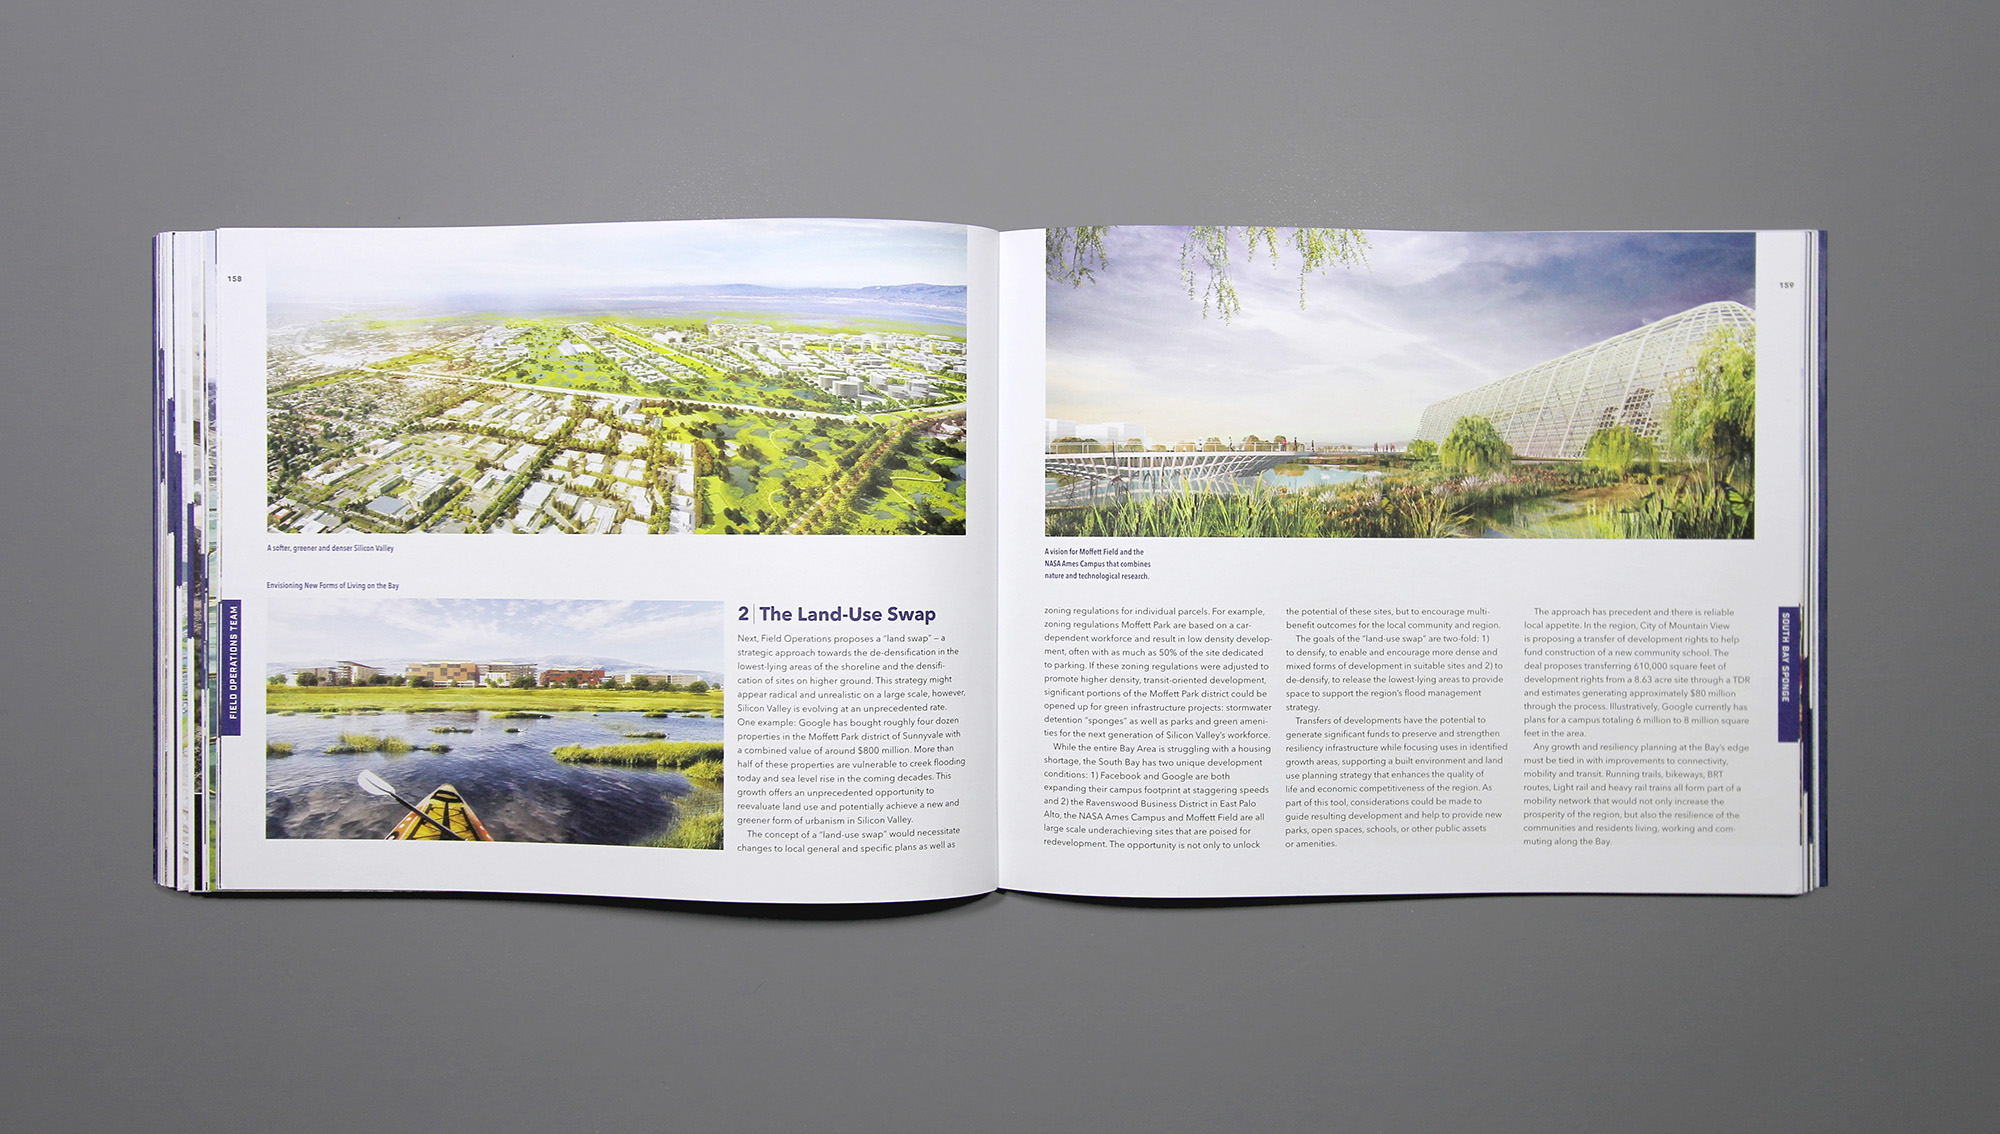 Resilient-by-Design-book-spread-1b